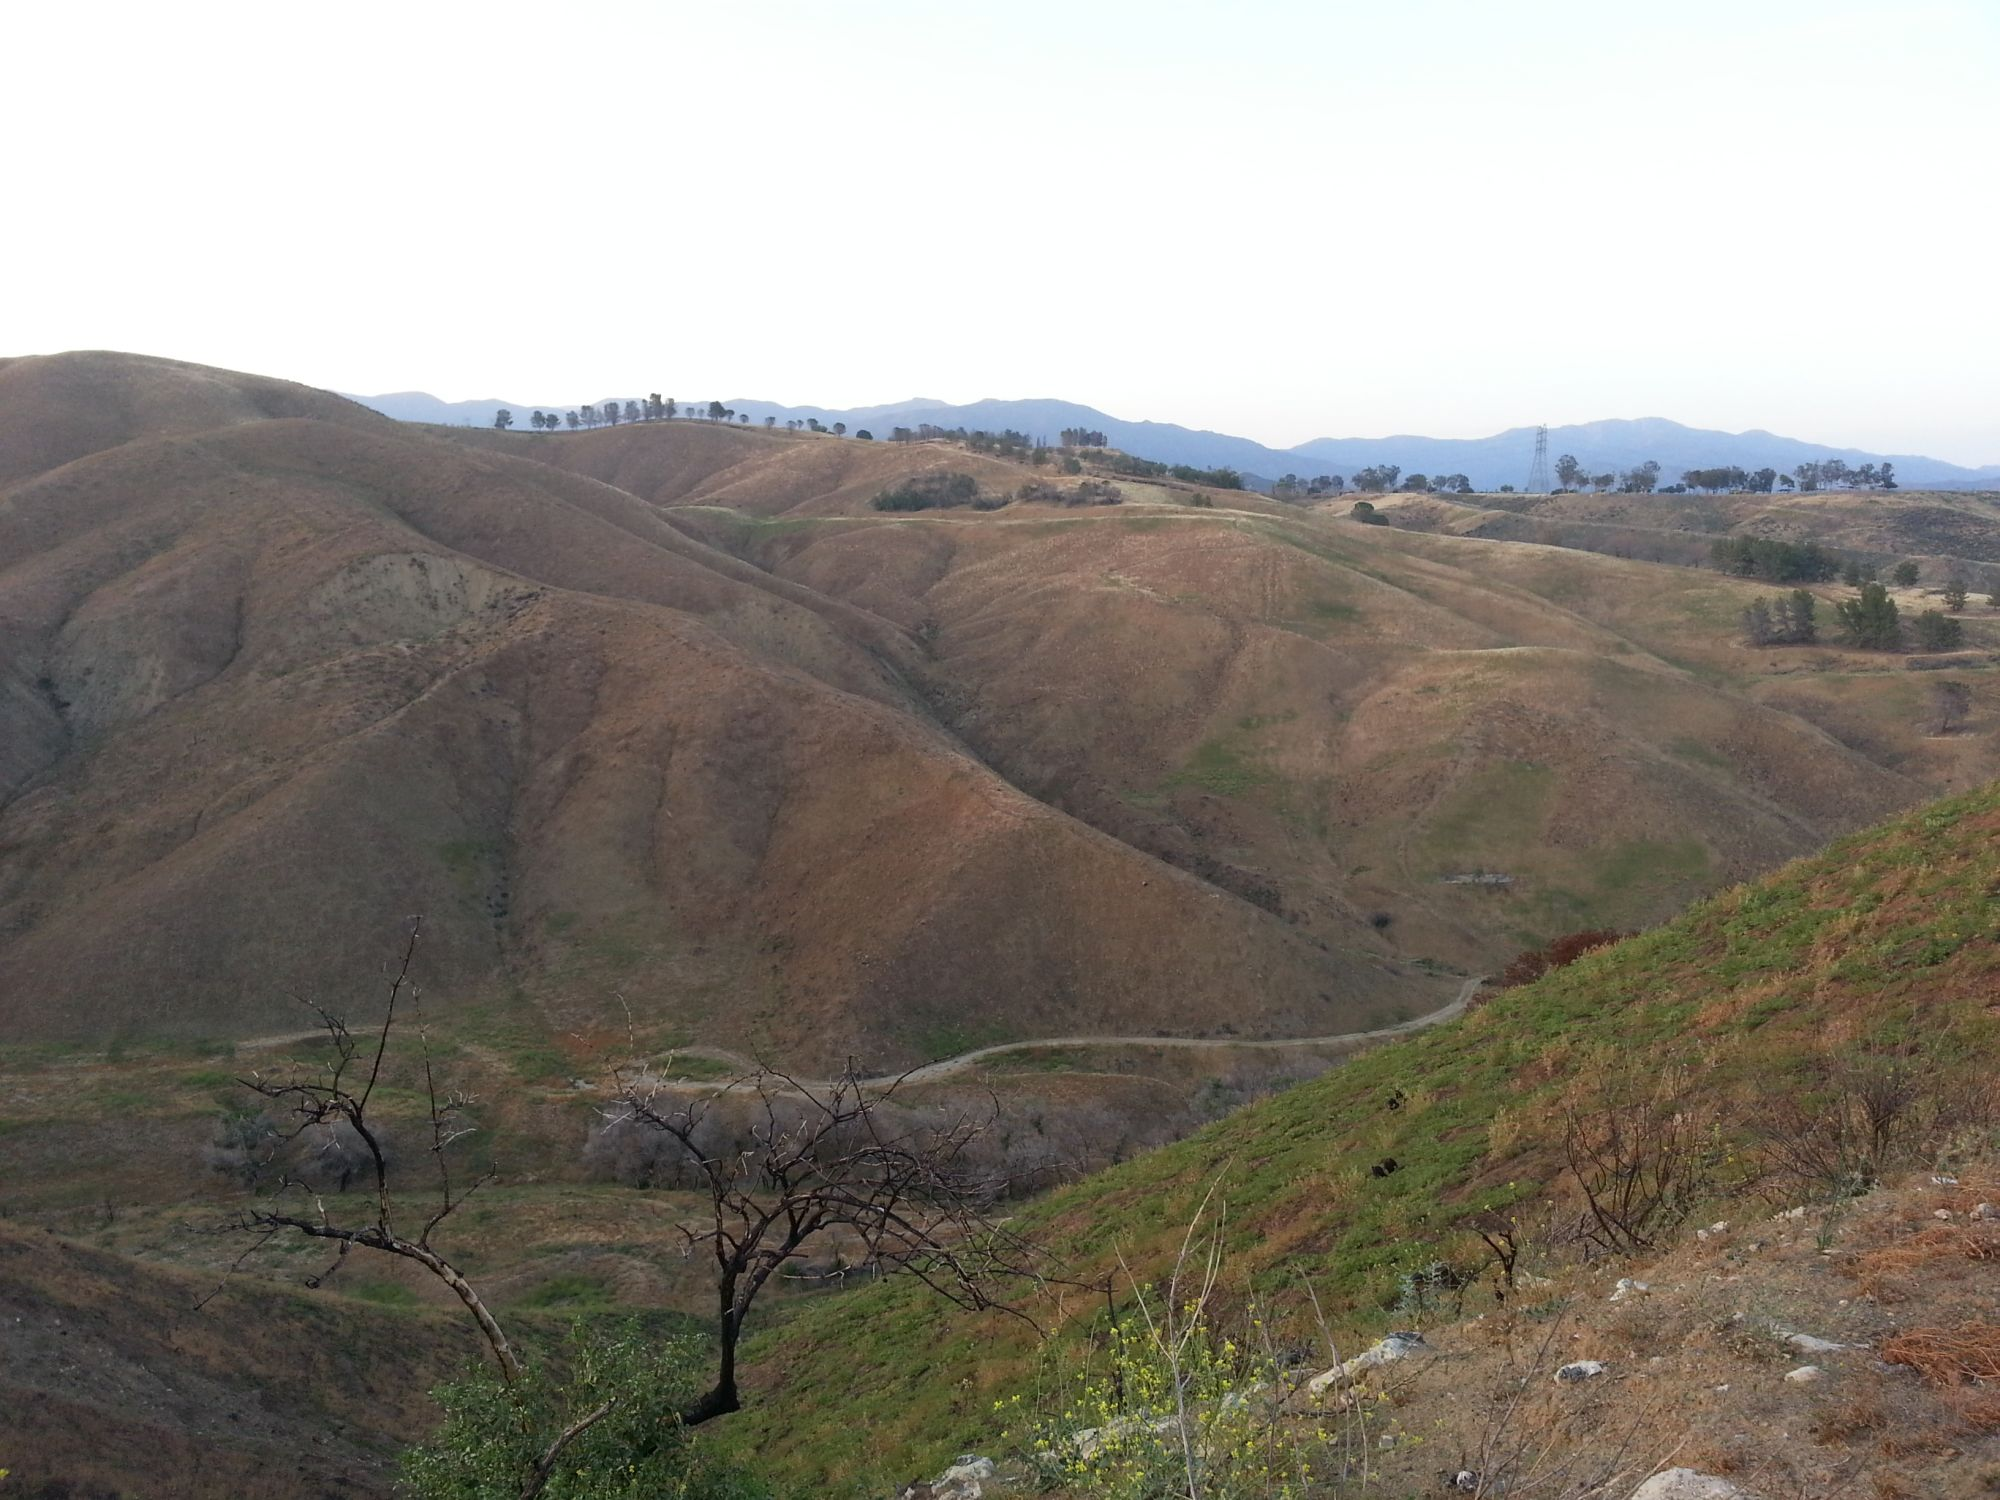 Geocaching Tour along Ridge Route Road in Southern California